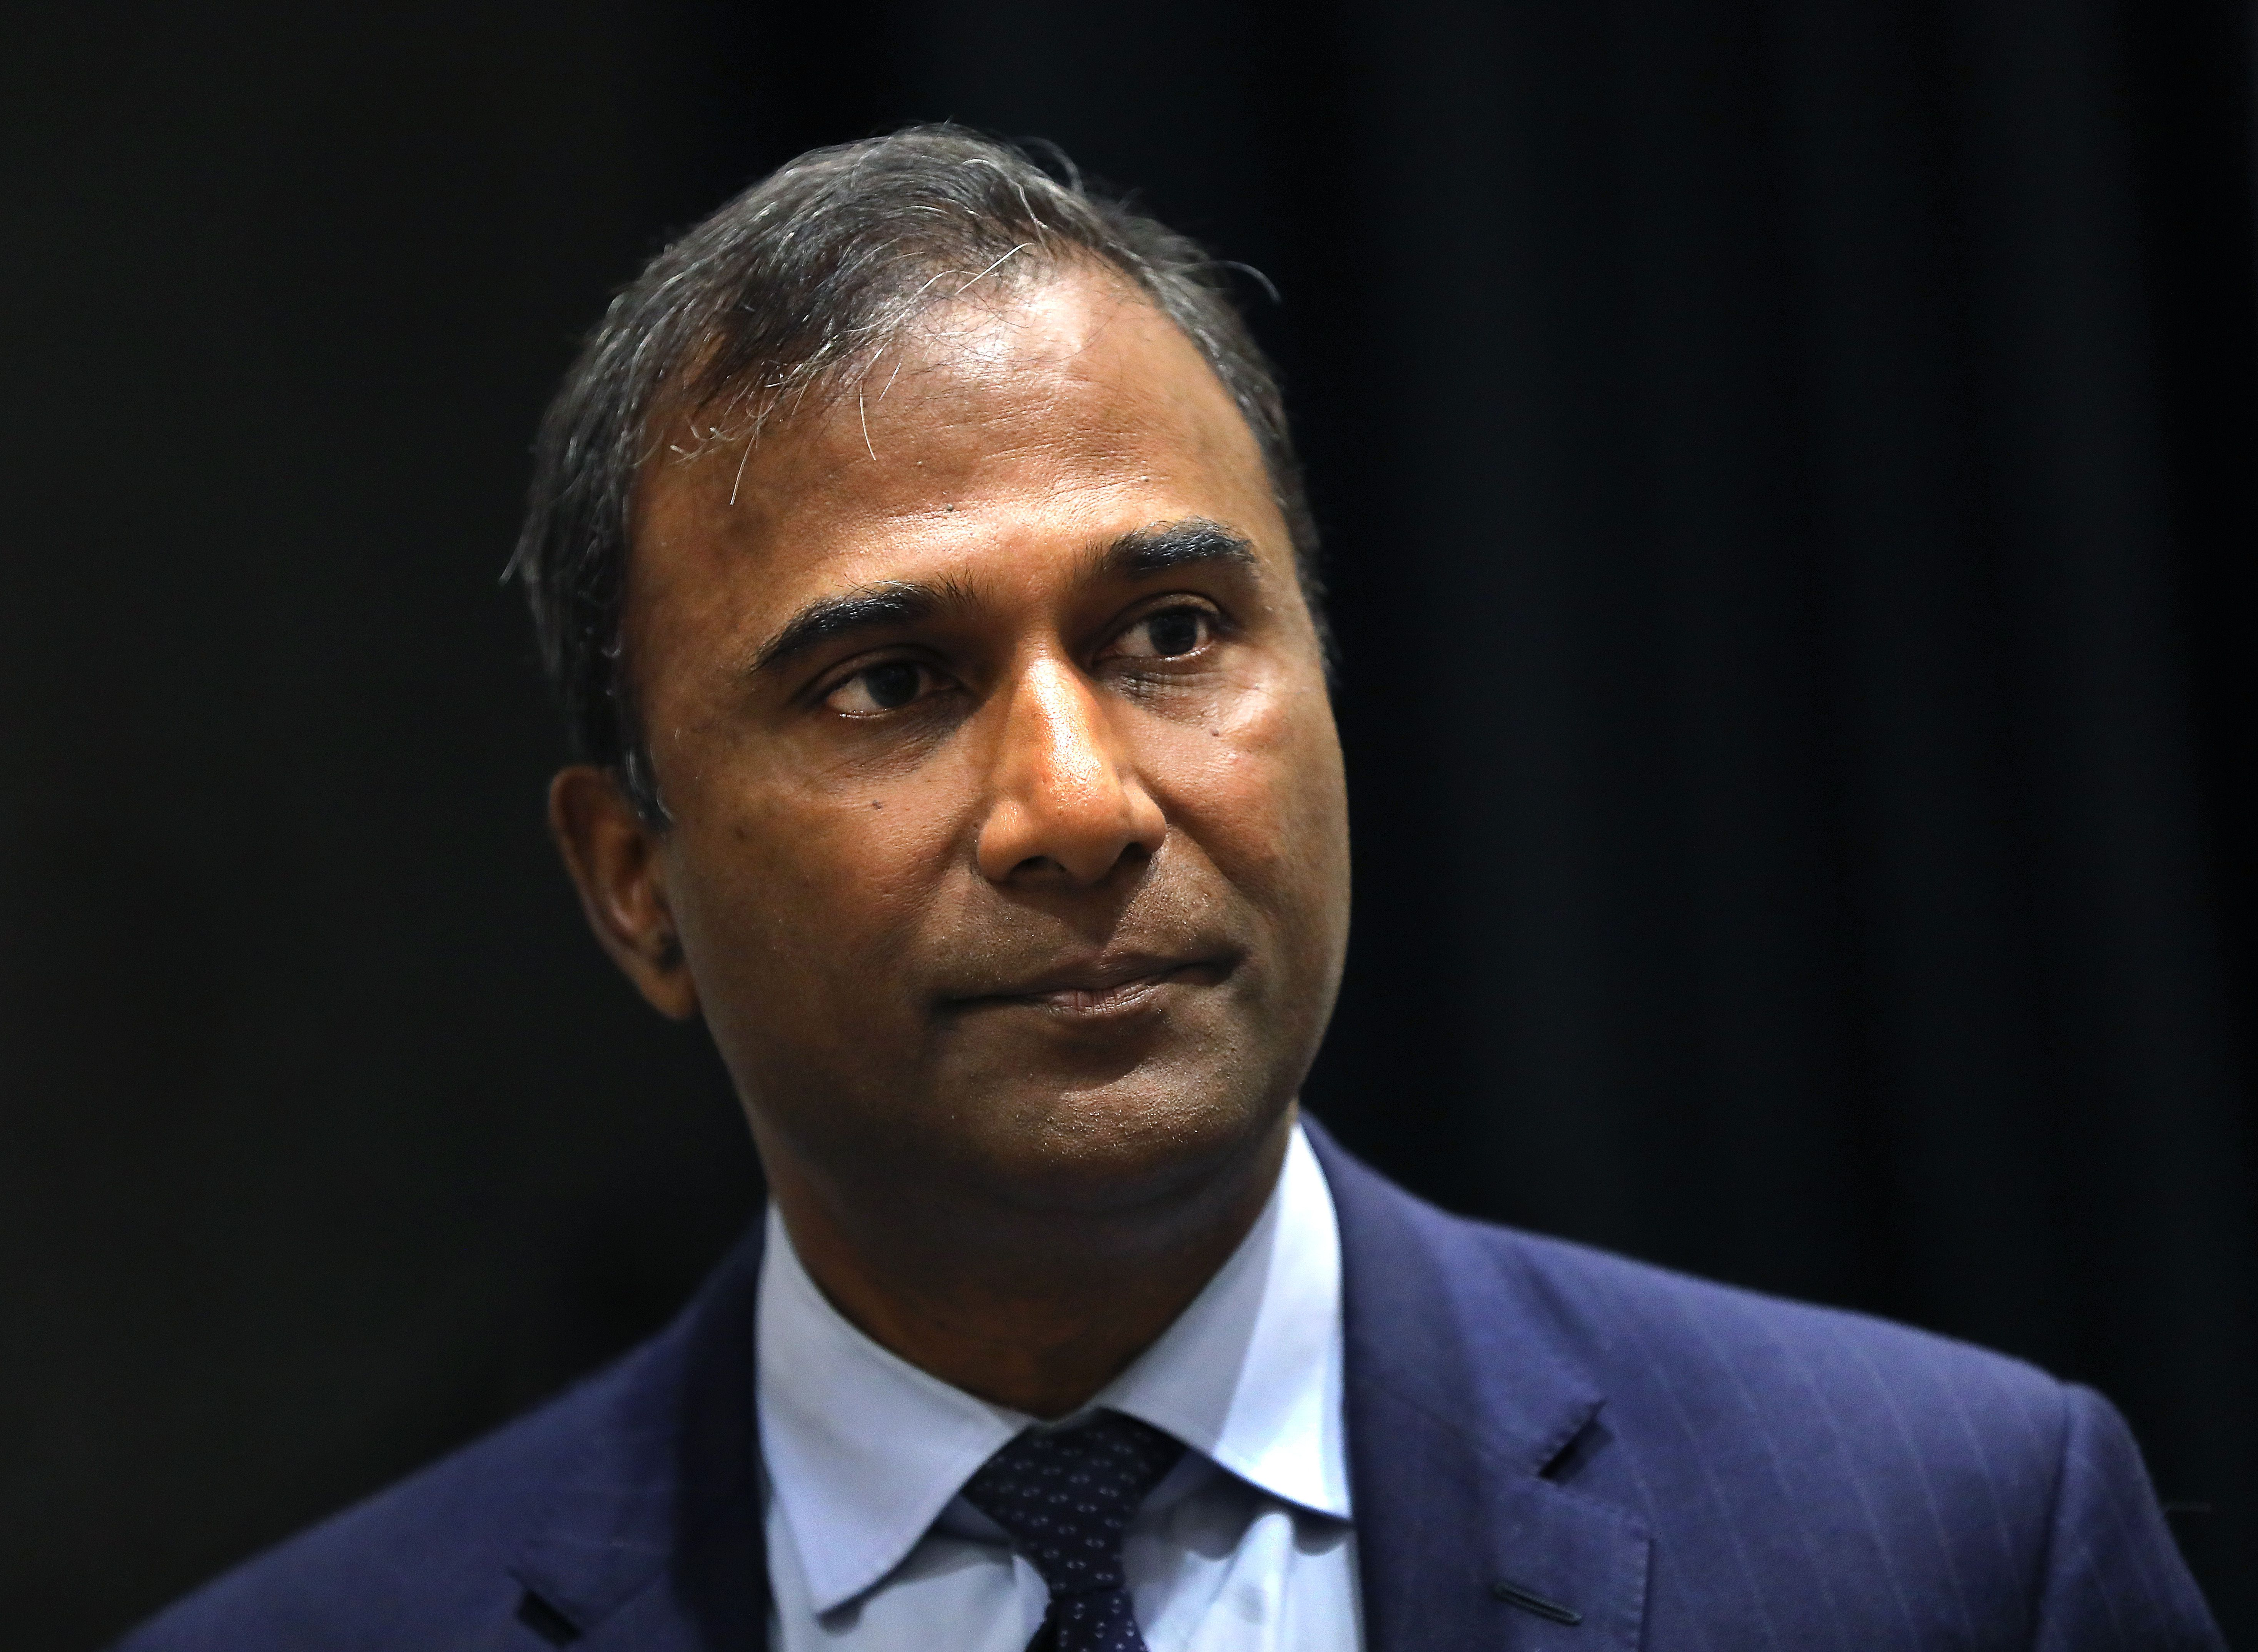 Shiva Ayyadurai The Candidate Who Represents Our Bizarre Political Climate The Boston Globe